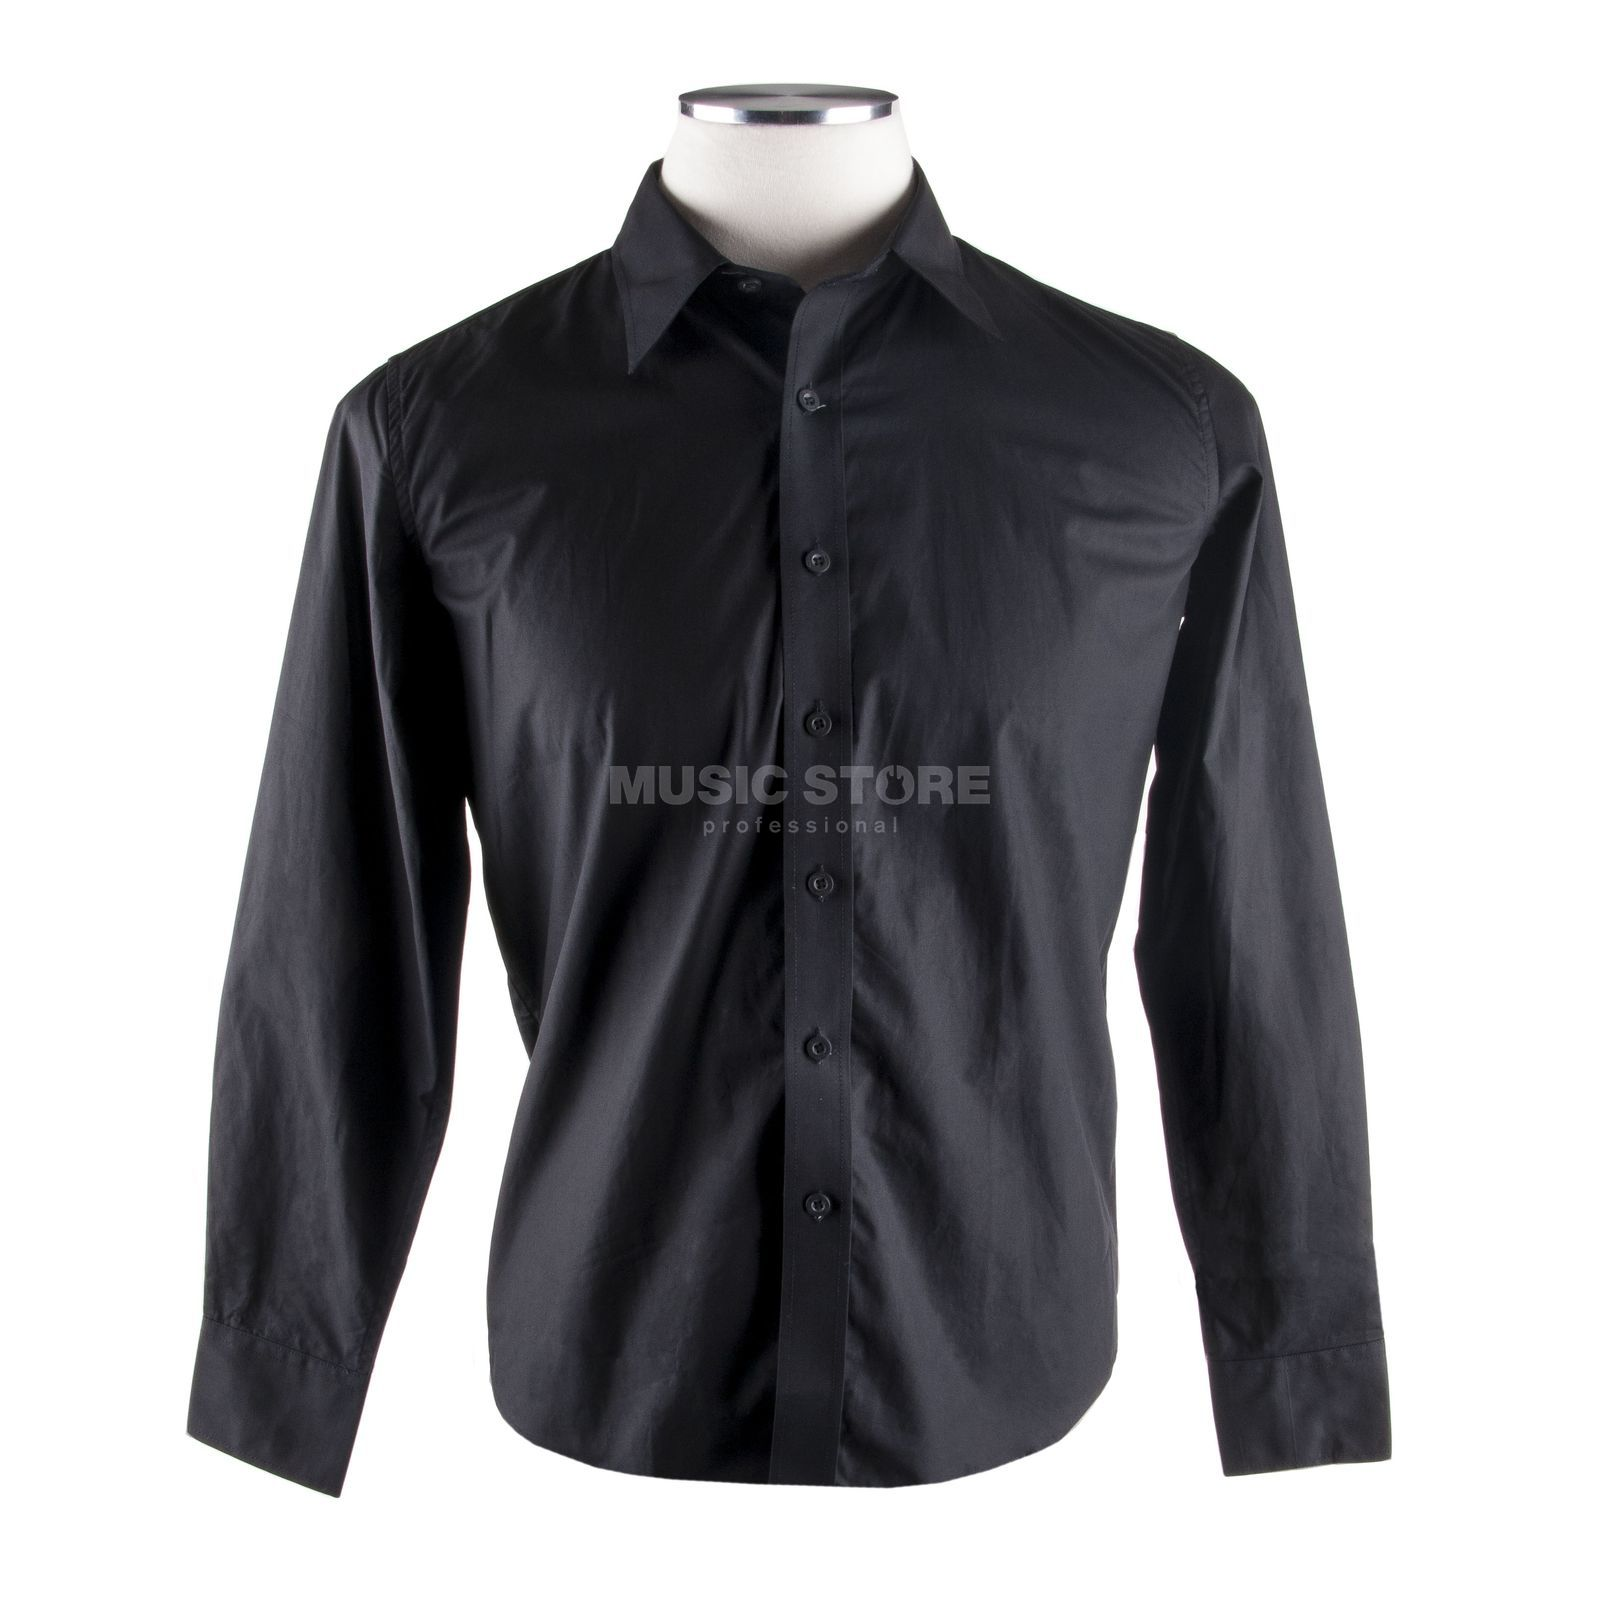 Fender Long Sleeve Shirt XL Black Produktbild